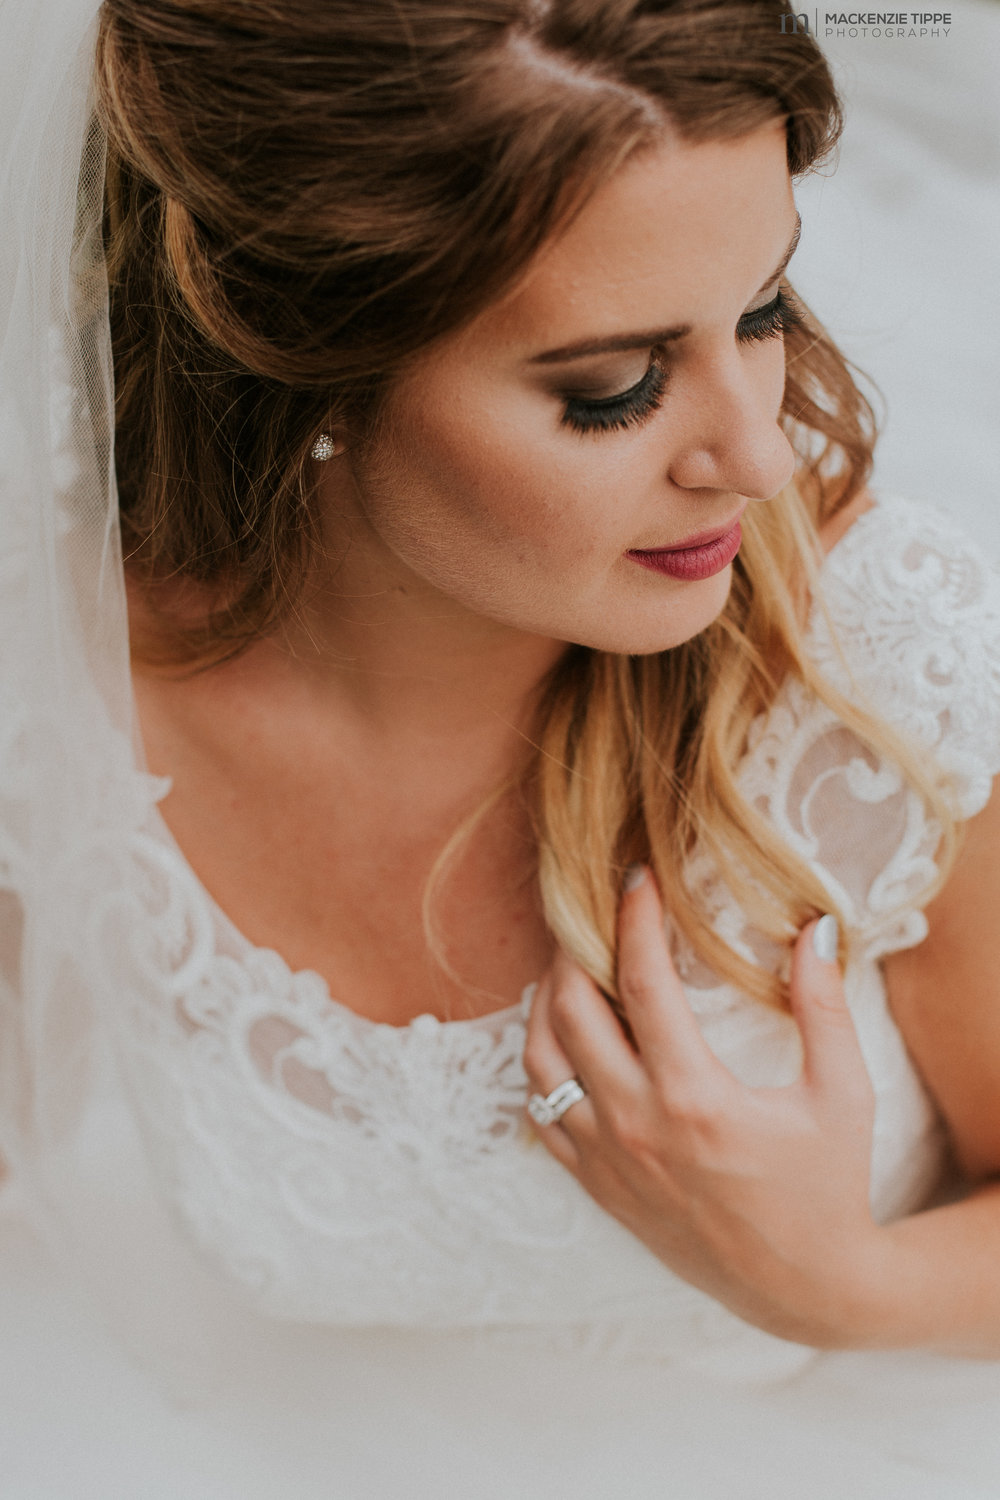 Bride: Jana  Photo: Mackenzie Tippe Photography